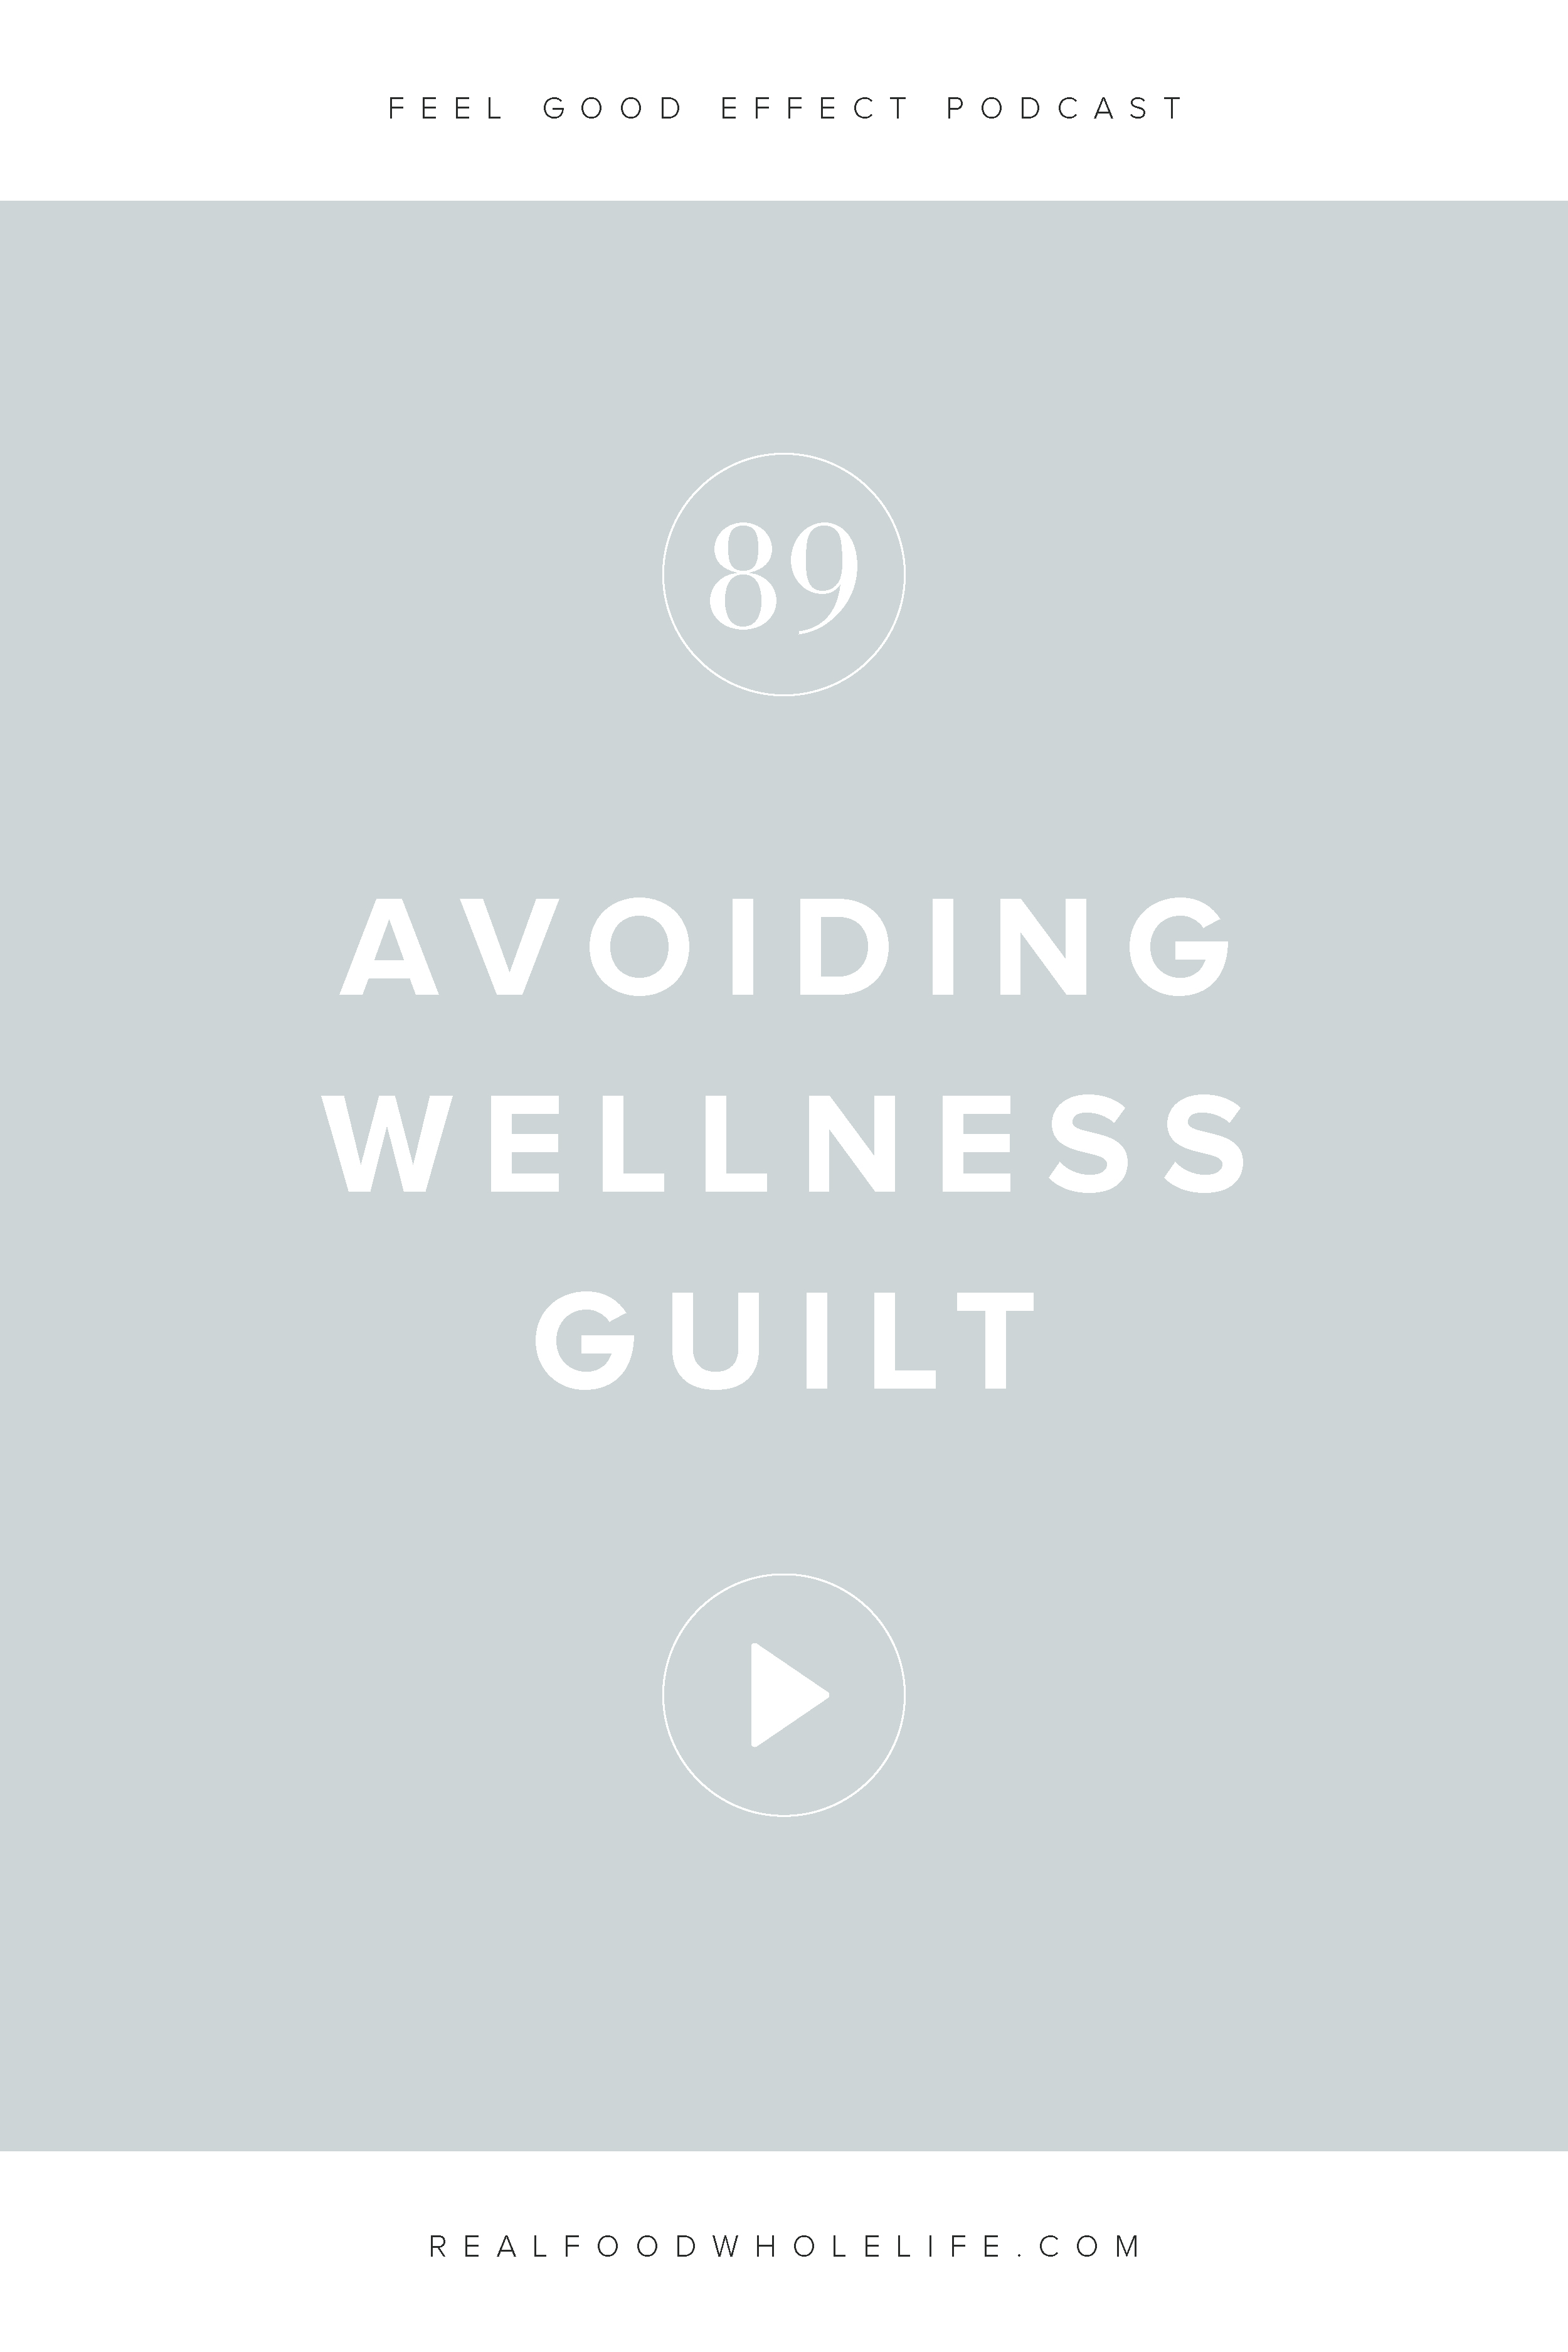 From nutrition to exercise to everything in between, it's so easy to feel overwhelmed and guilty about all the conflicting information in the wellness field. In this episode about the secret to avoiding wellness guilt., we'll talk about how to sift through all that information to find a way to wellness that will work for you. #realfoodwholelife #feelgoodeffect #wellness #podcast #gentlewellness #gentle #gentleisthenewperfect #diet #realfood #livewell #healthyeating